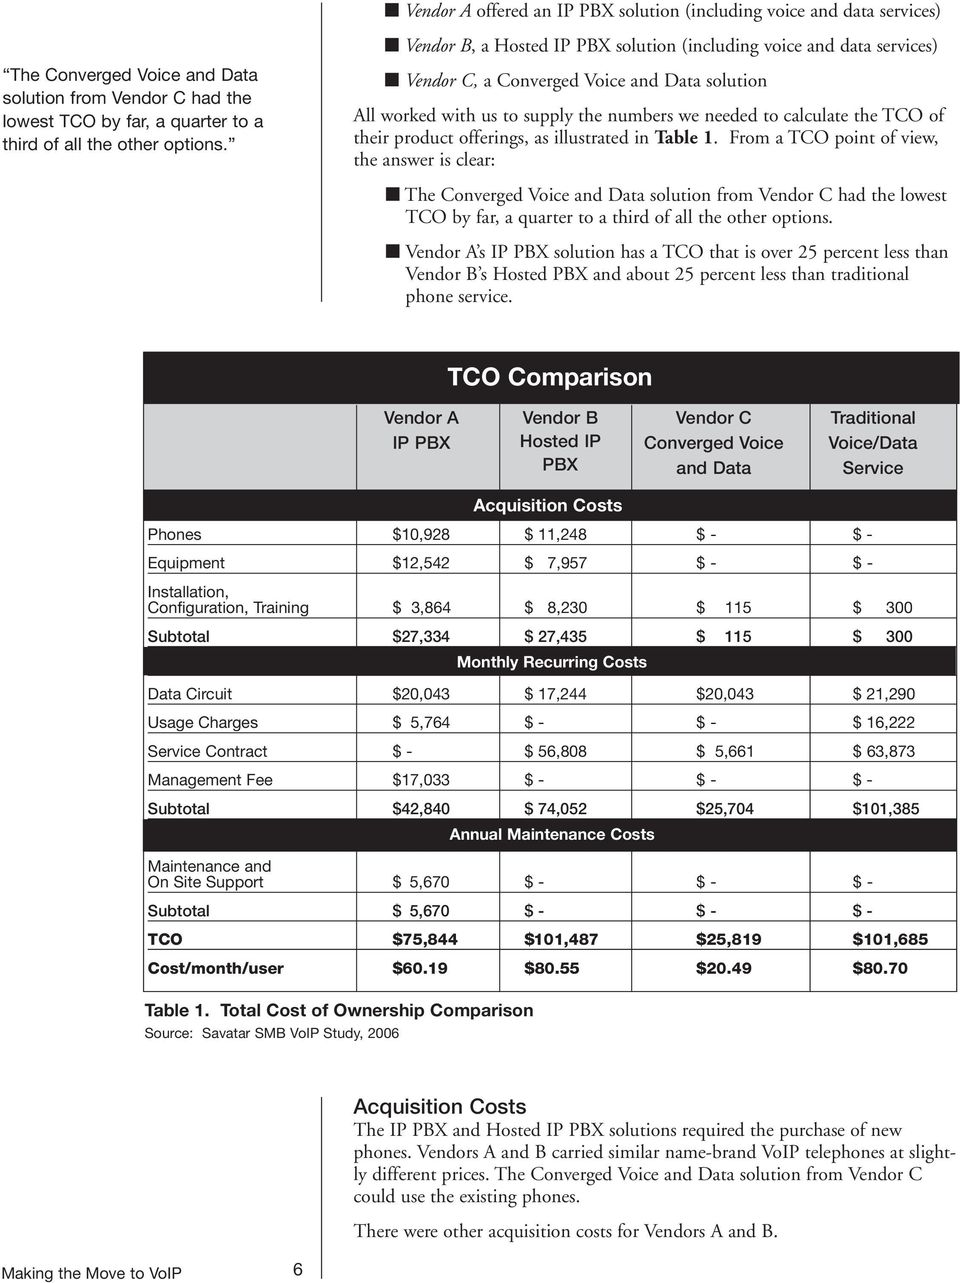 Vendor C, a Converged Voice and Data solution All worked with us to supply the numbers we needed to calculate the TCO of their product offerings, as illustrated in Table 1.